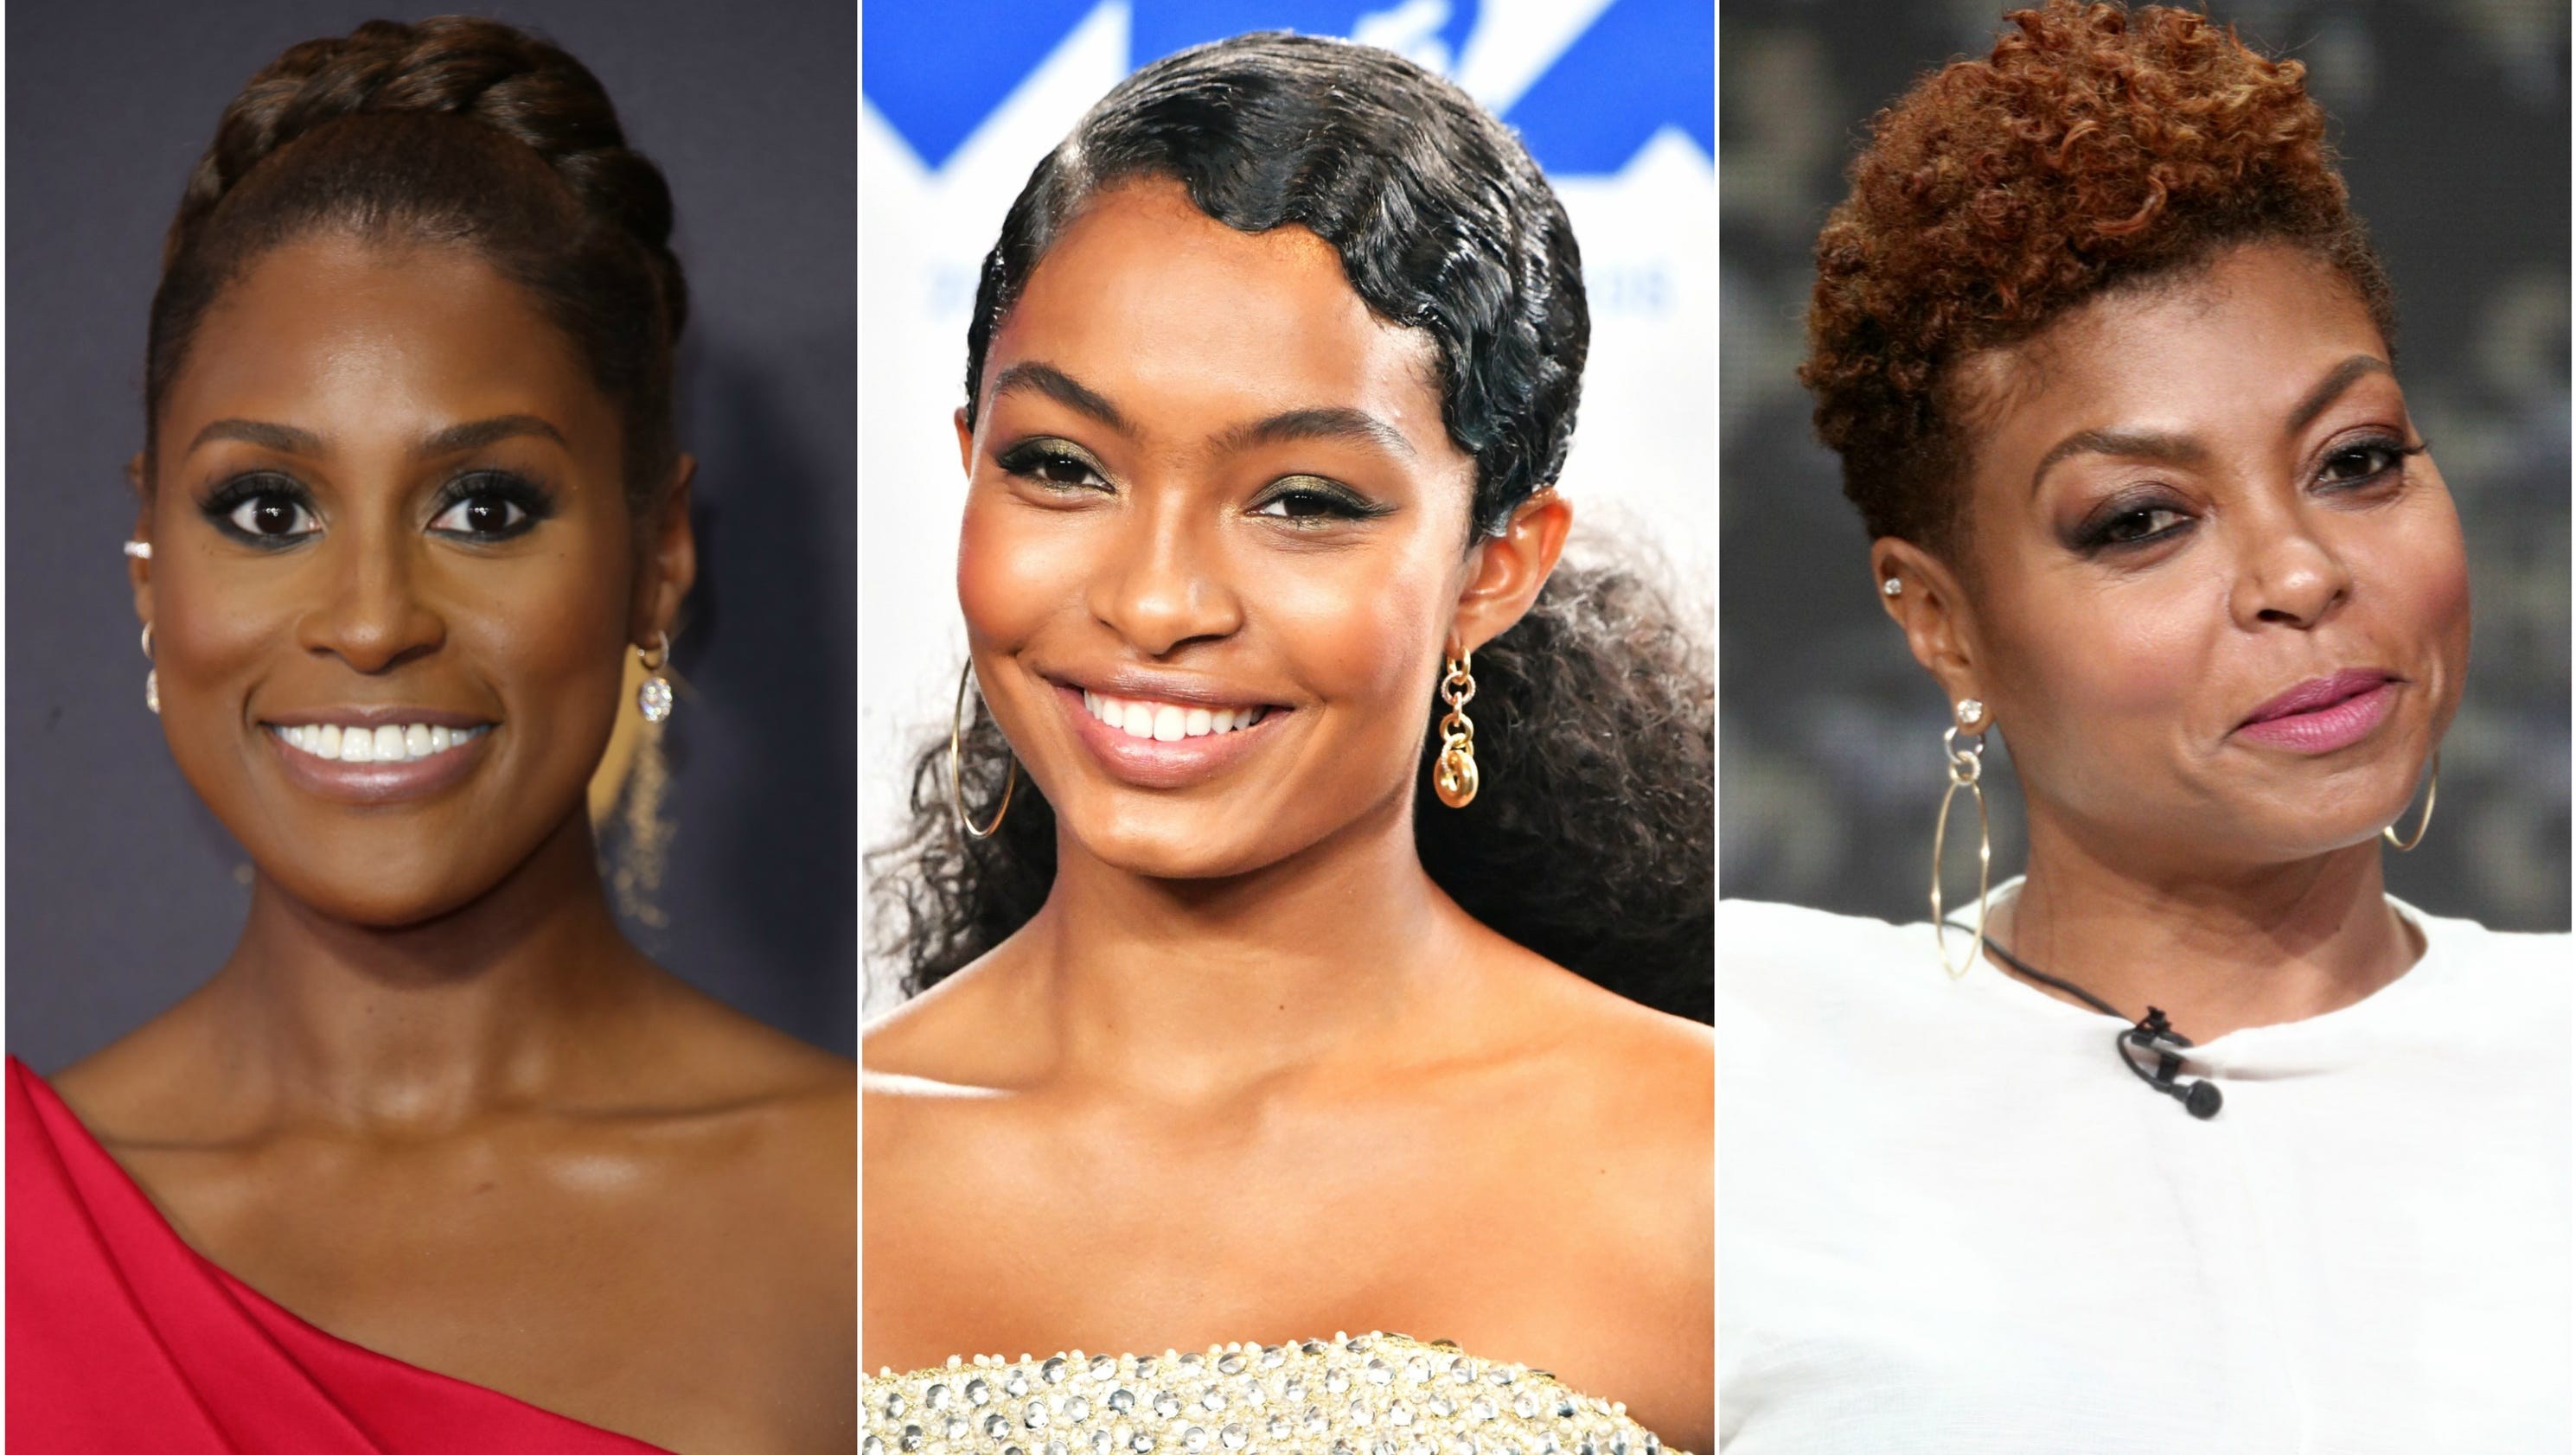 Style Natural Hair: Natural Hair Is Growing (and Glowing) In Hollywood And Beyond